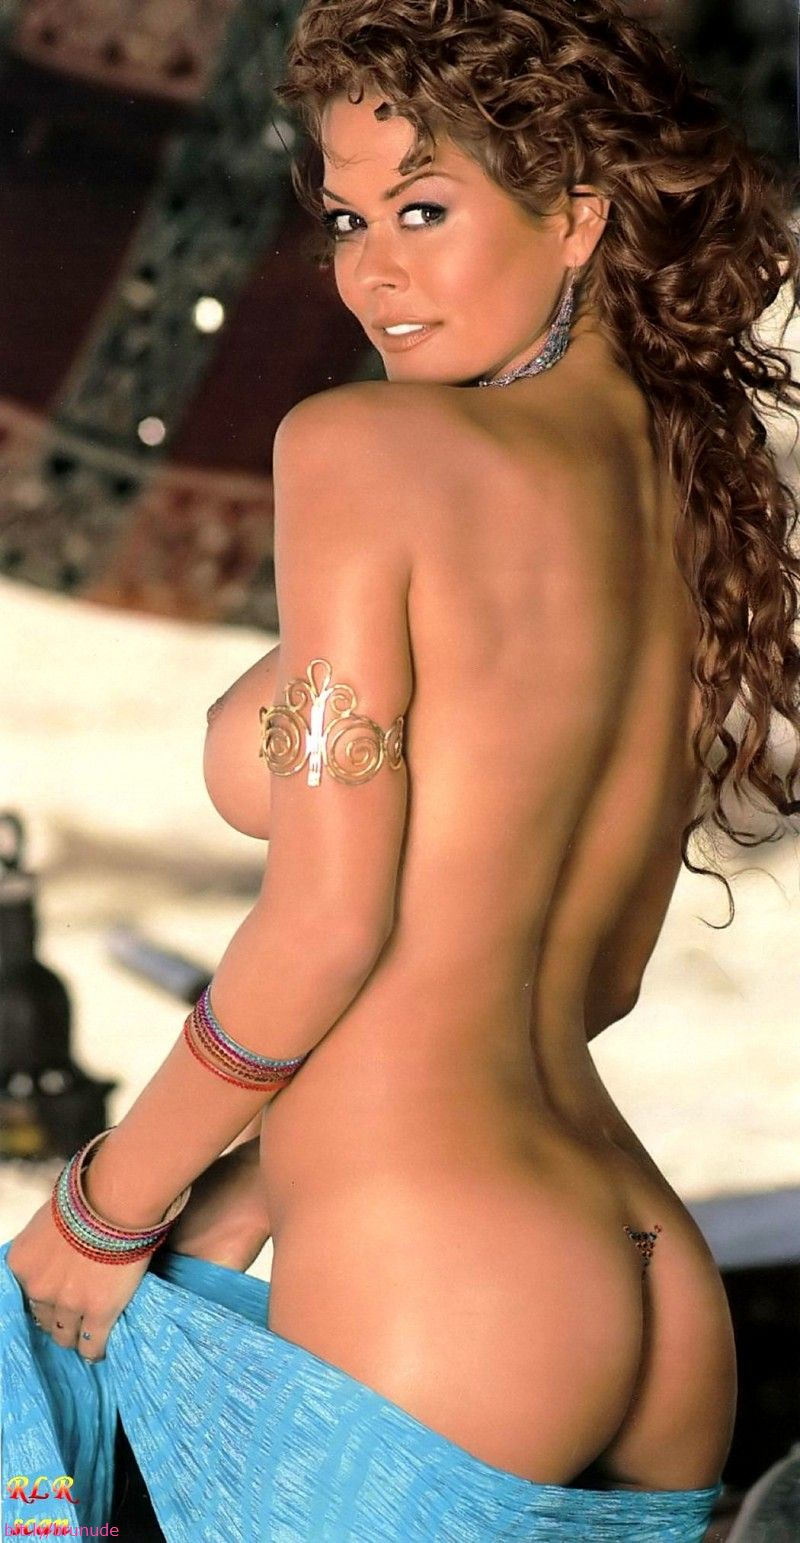 Brooke burke playboy nude